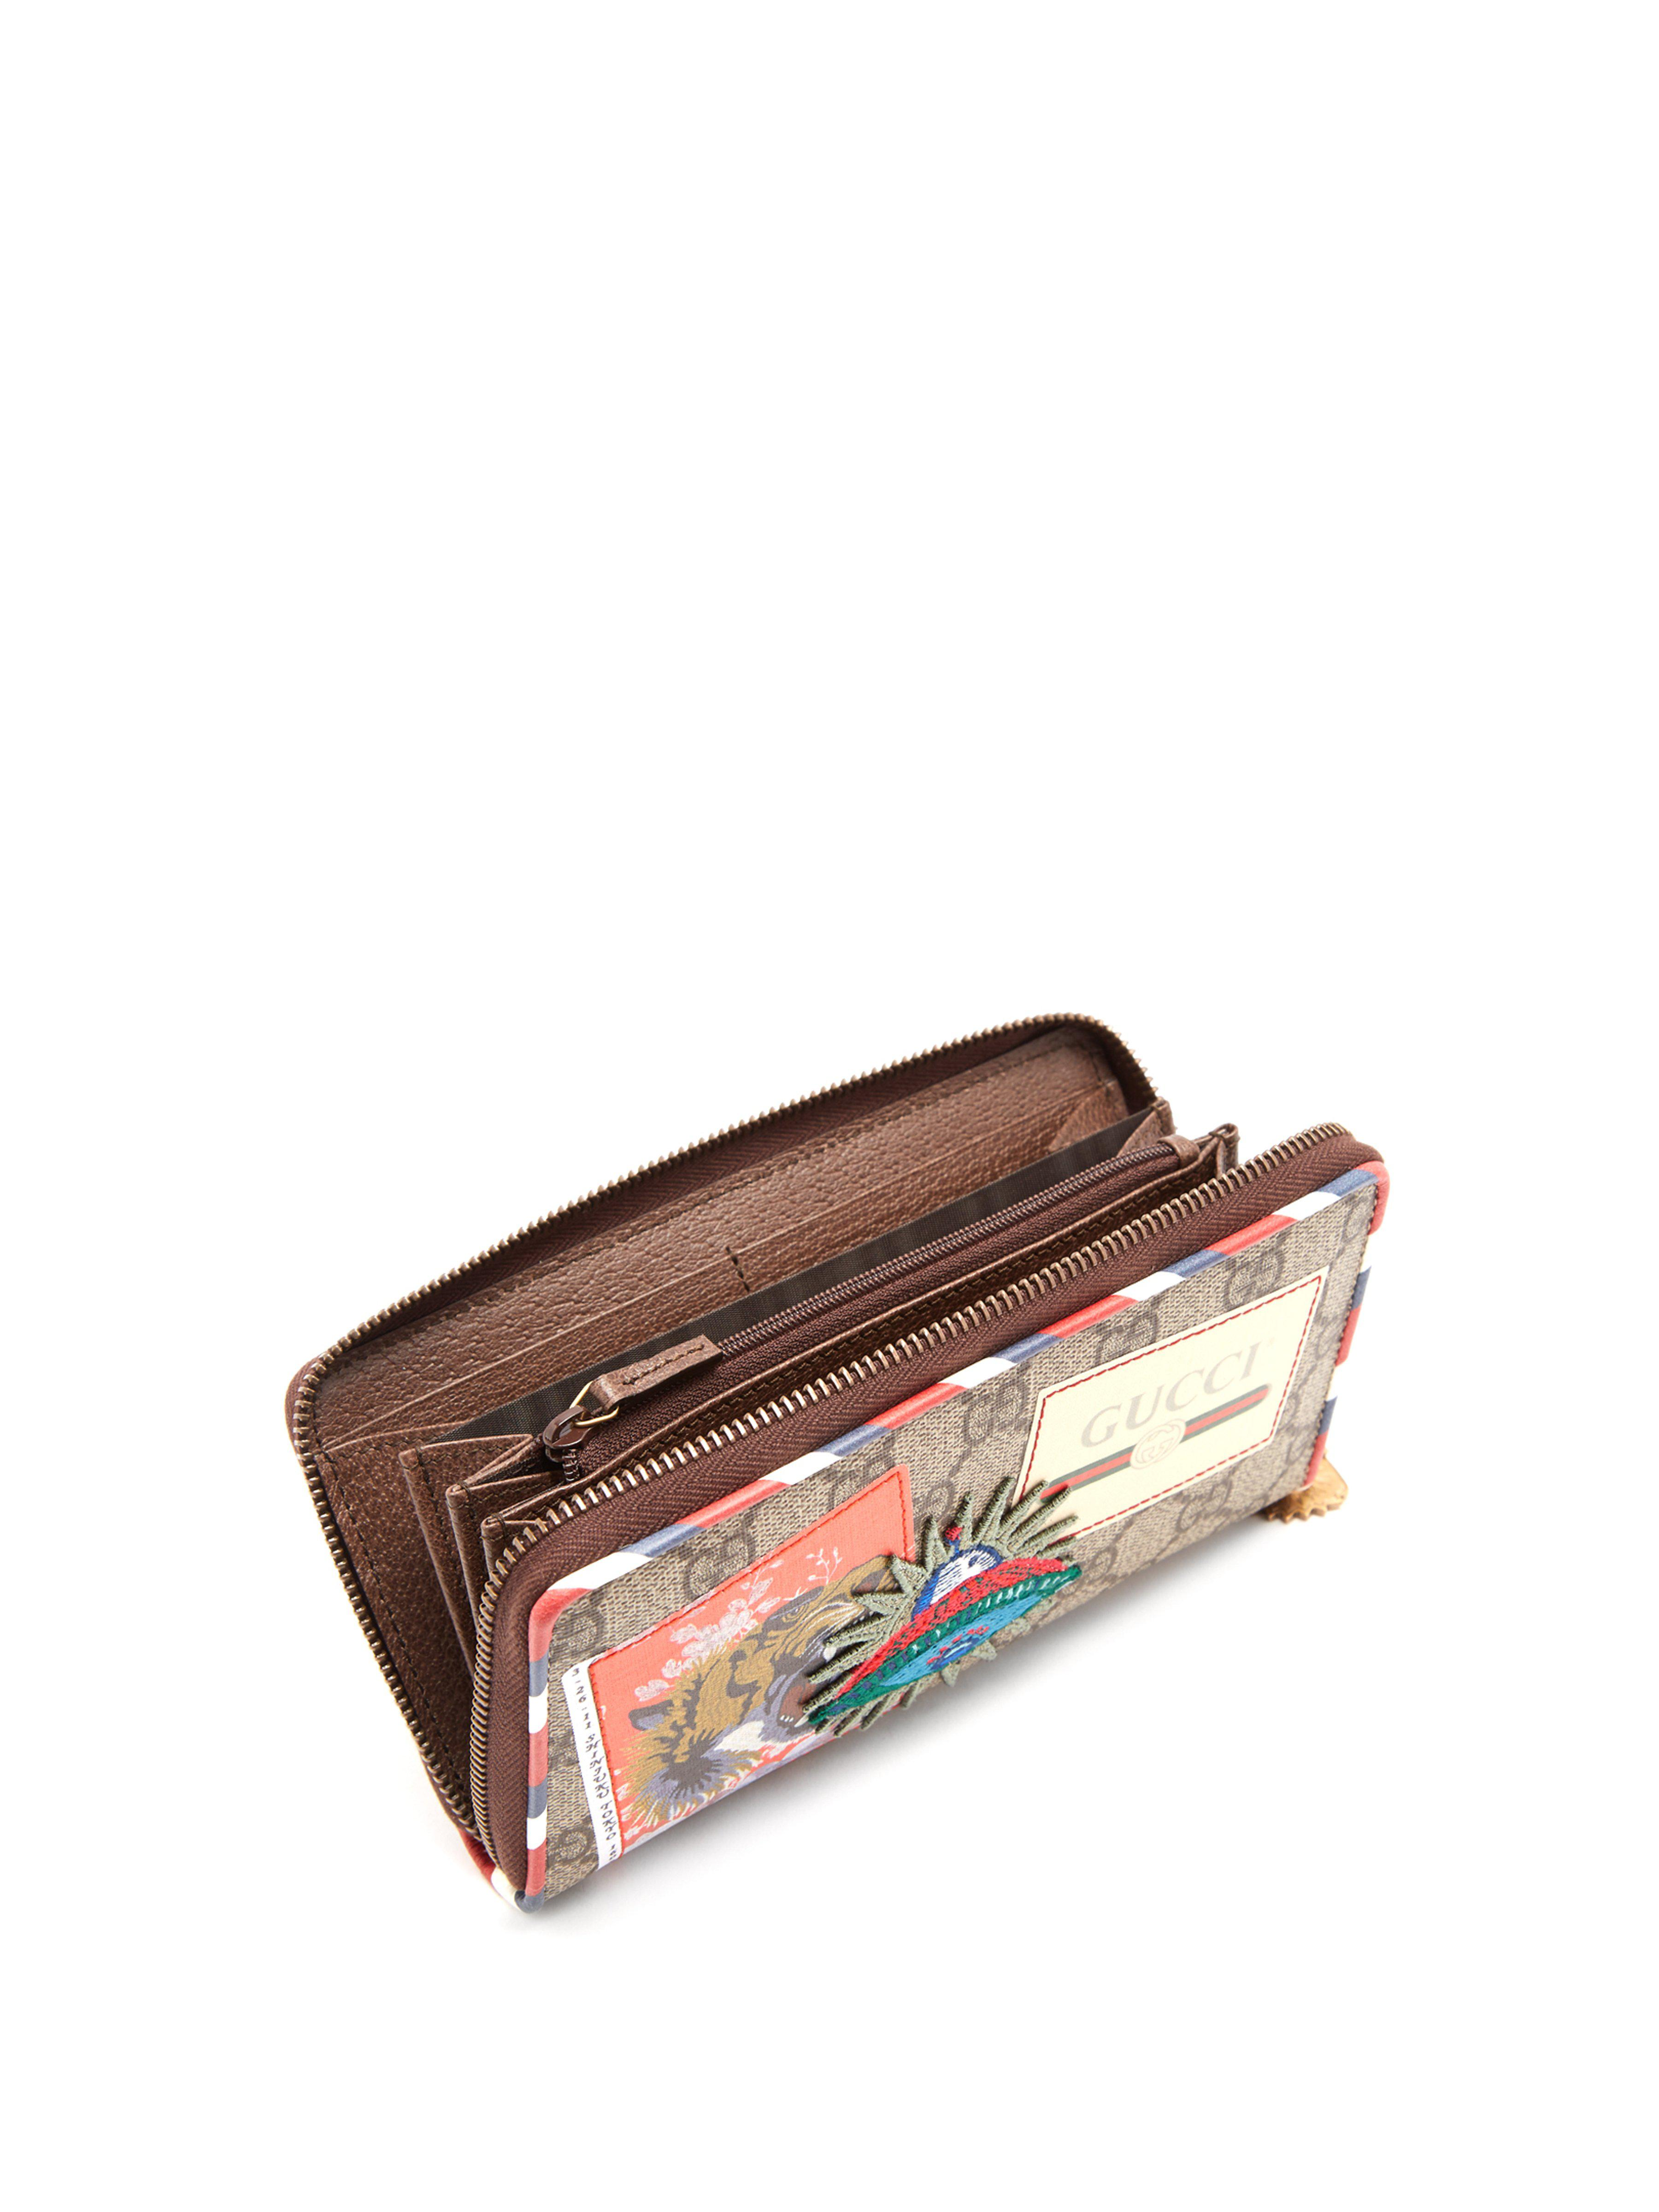 415b8de24743 Gucci - Multicolor Gg Supreme Logo And Spaceship Patch Wallet for Men -  Lyst. View fullscreen